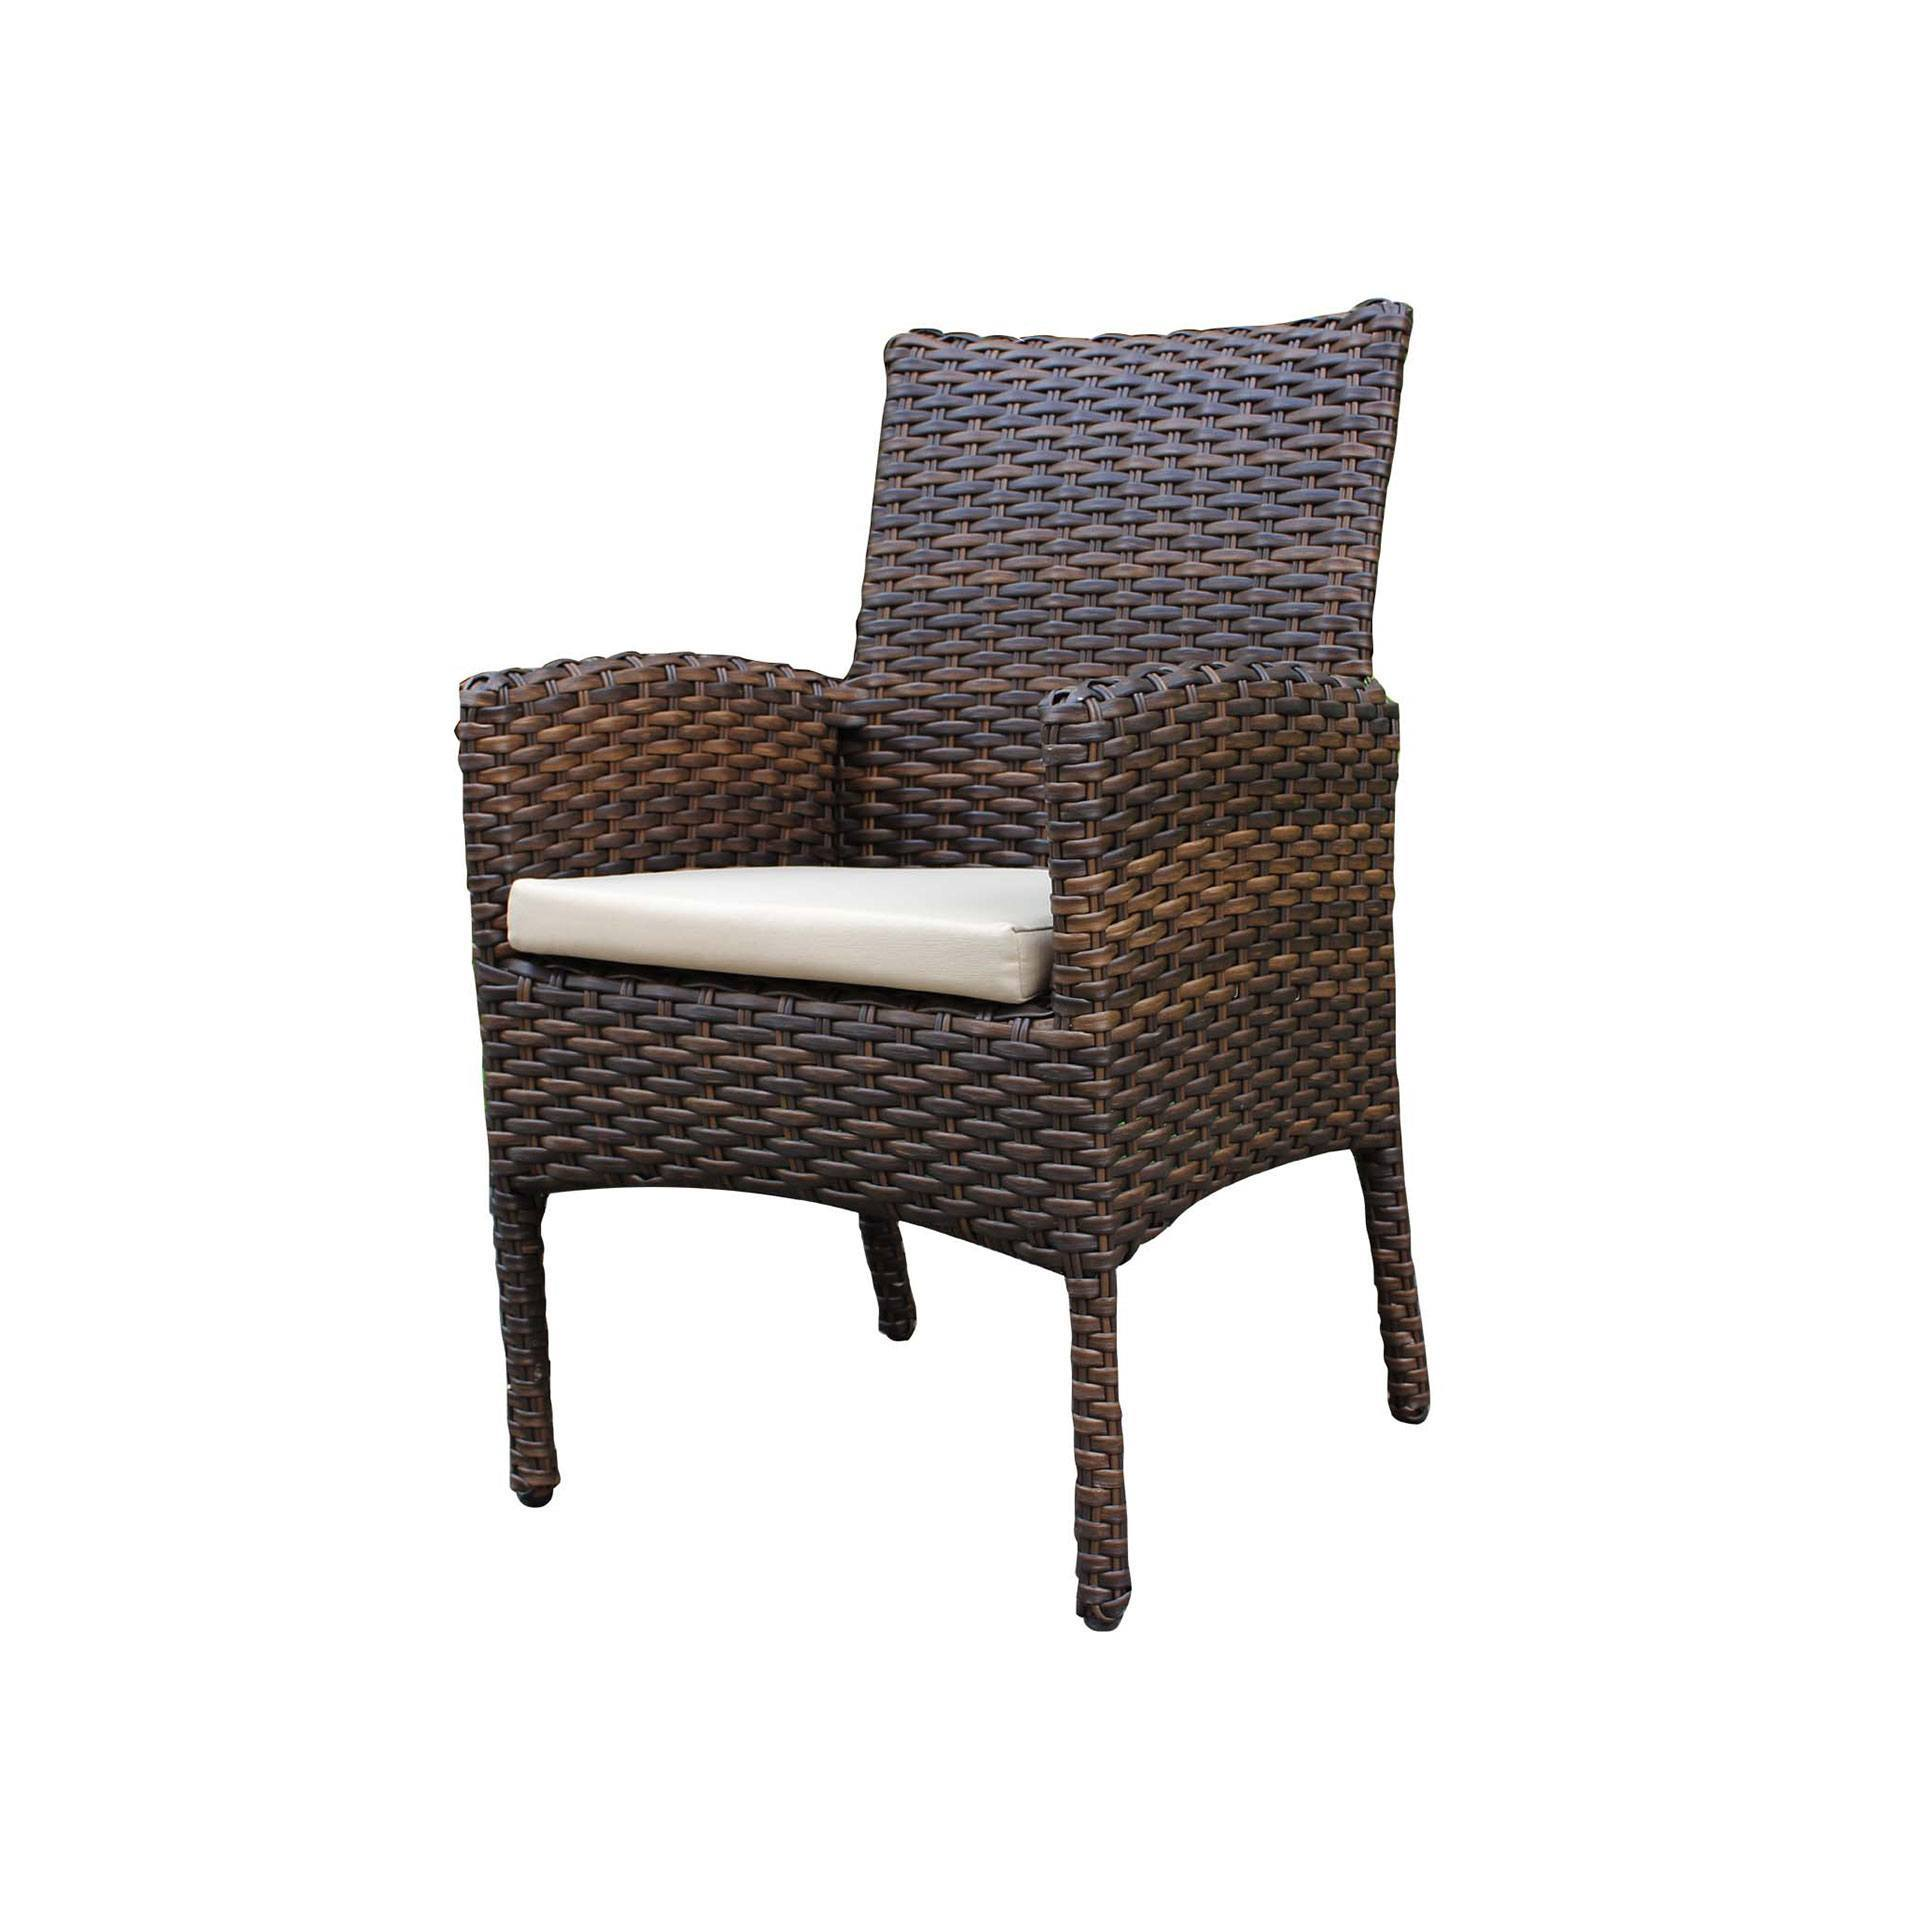 Ratana – Horizon Dining Chairs